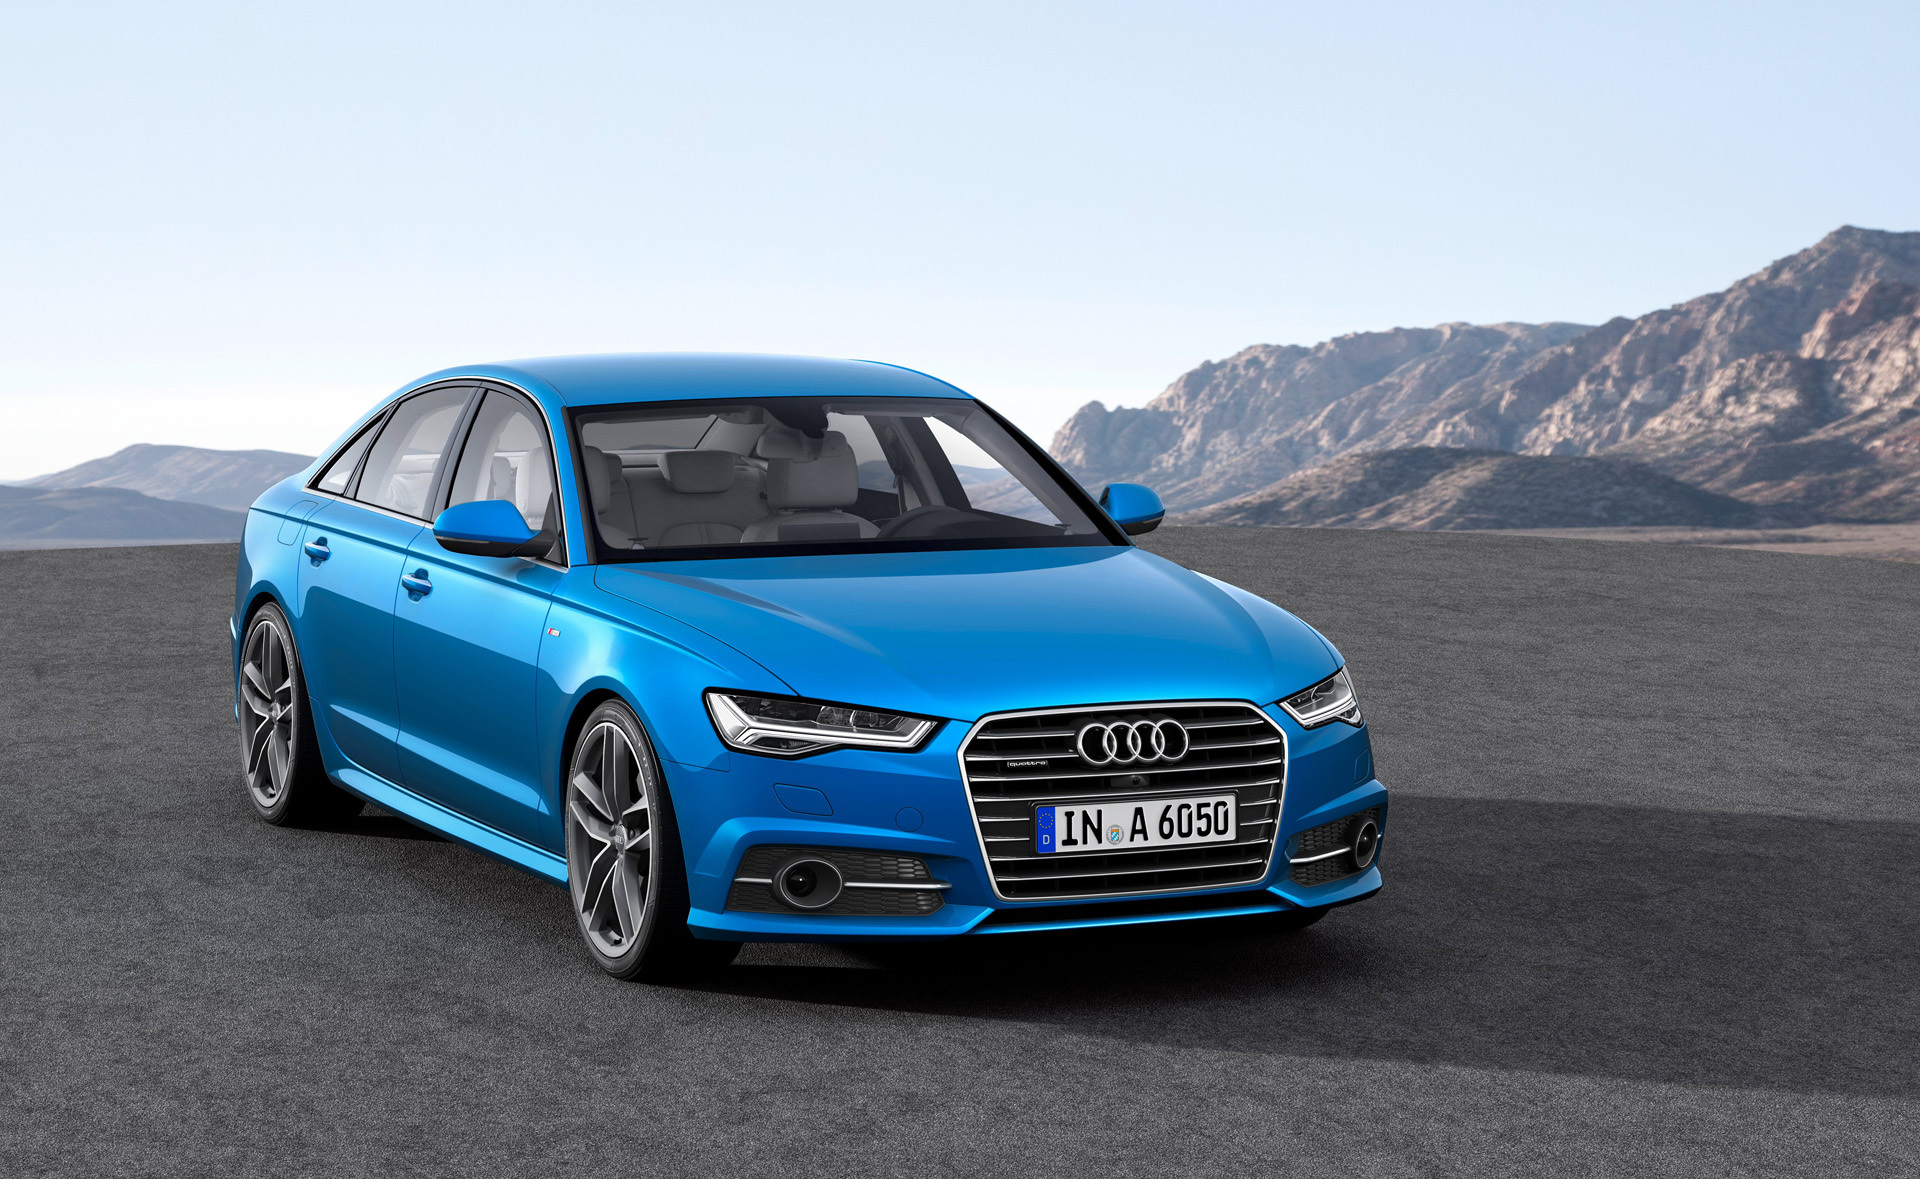 2016 audi a6 pricing starts at 46 200 a7 at 68 300 for Lunghezza audi a6 avant 2016